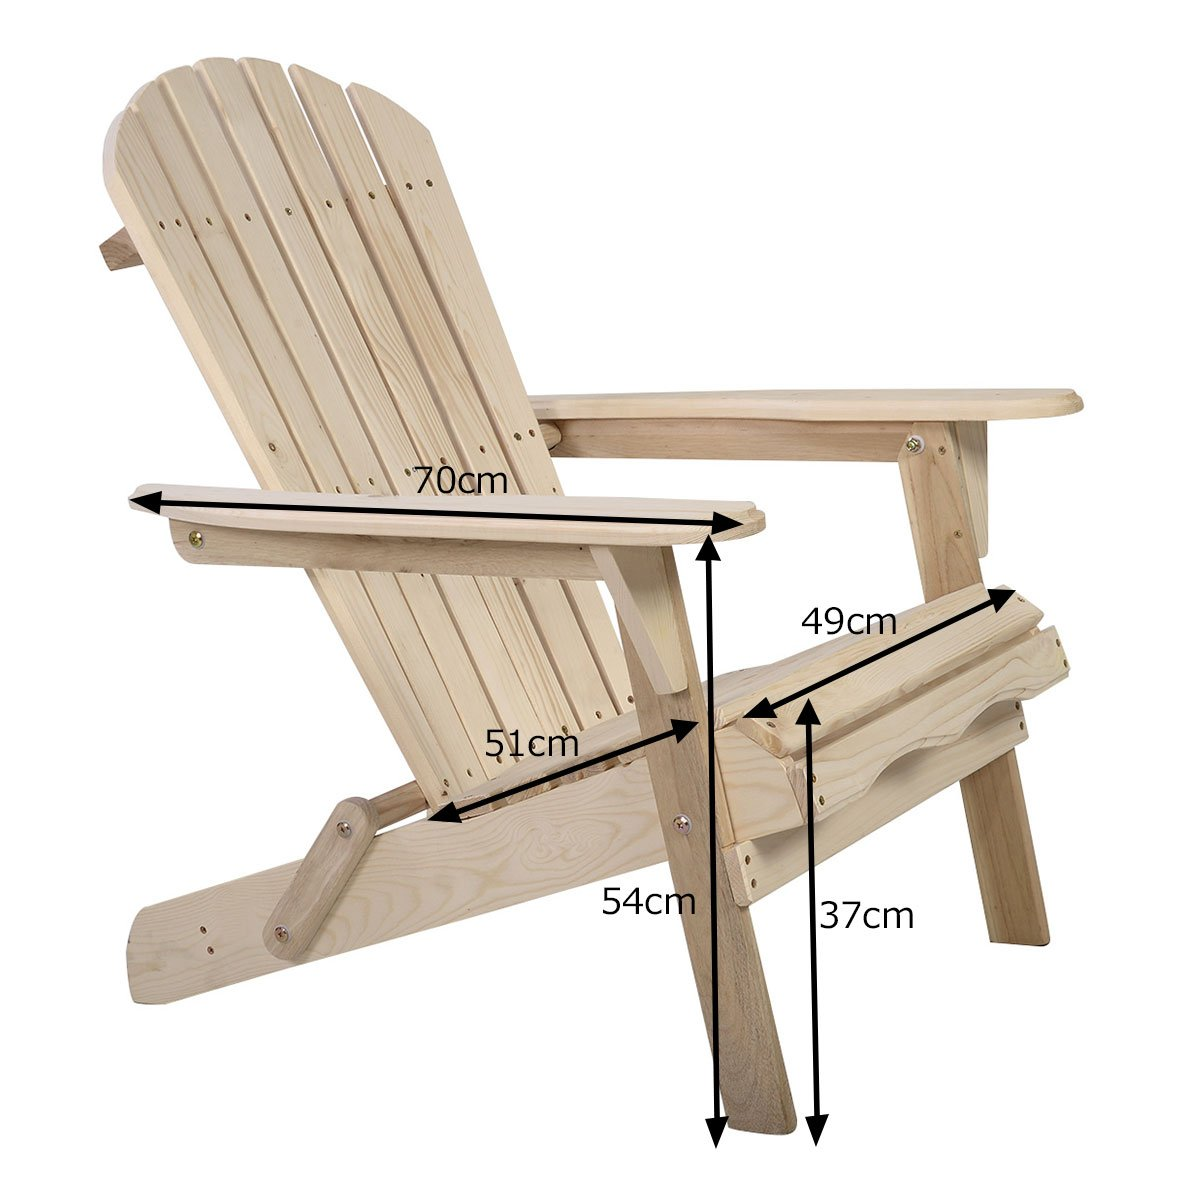 Costway Adirondack Chair Foldable Wood Seat Furniture Deck Lawn Garden Patio Outdoor (Style A)